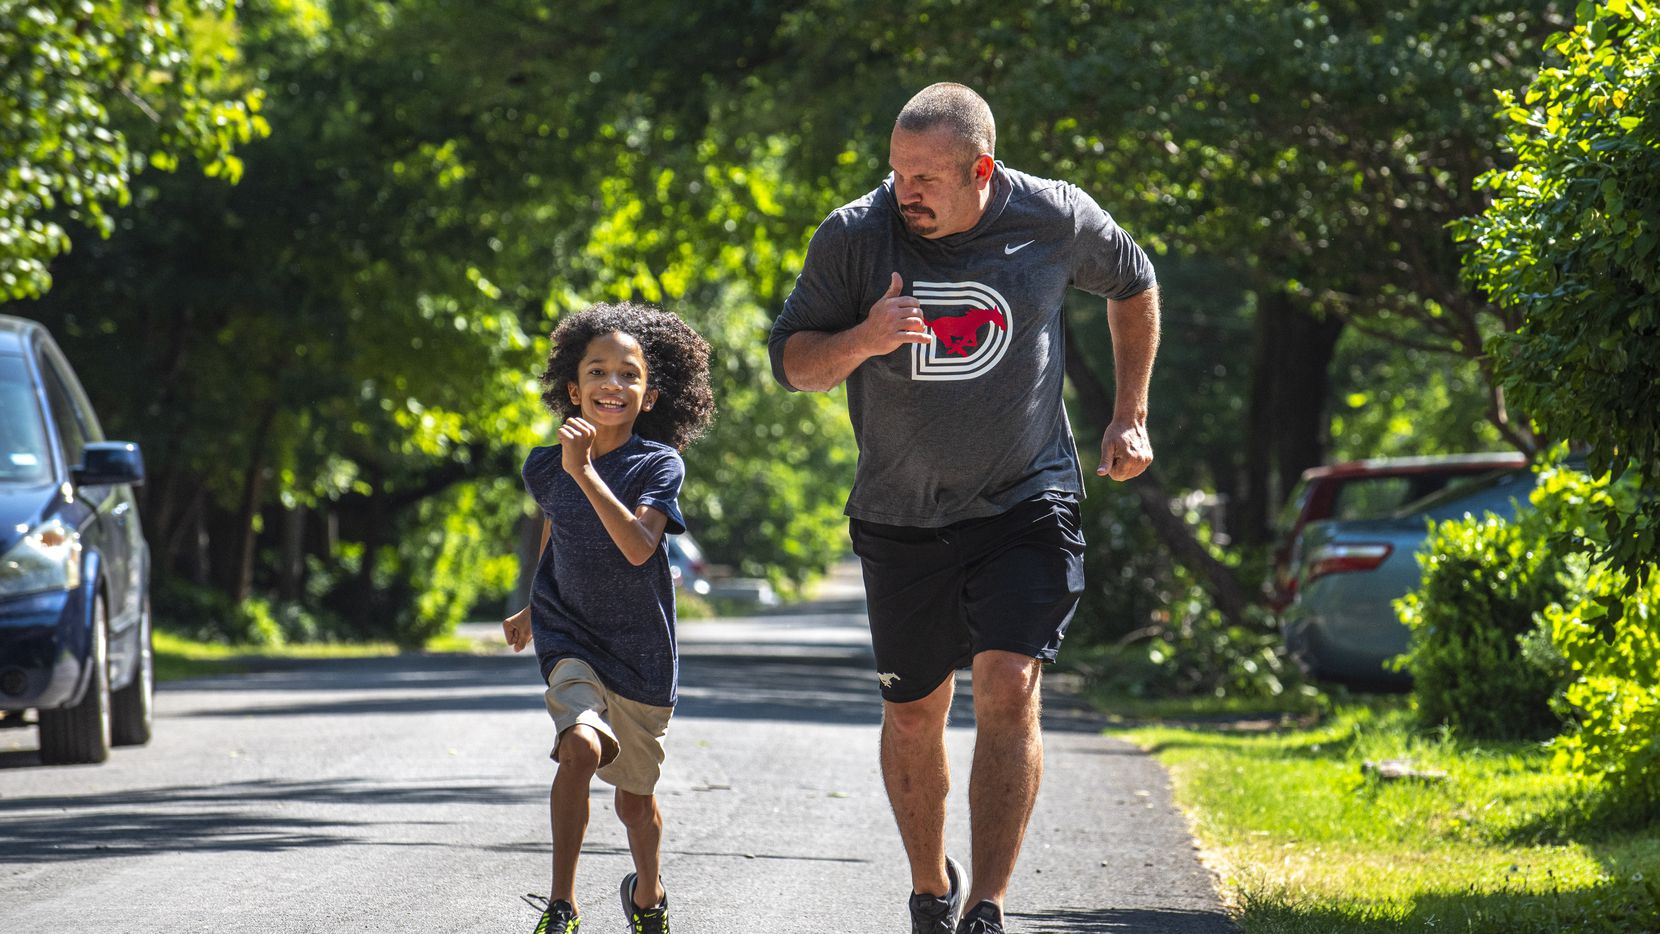 Scott Nady, Director of Recruiting for football at Southern Methodist University, runs with his son Max Nady, as the 11-year-old boy shows off his running skills, outside their home in Dallas, June 09, 2020. Max has cerebral palsy and the family was told he would likely be unable to walk after he was born. Ben Torres/Special Contributor